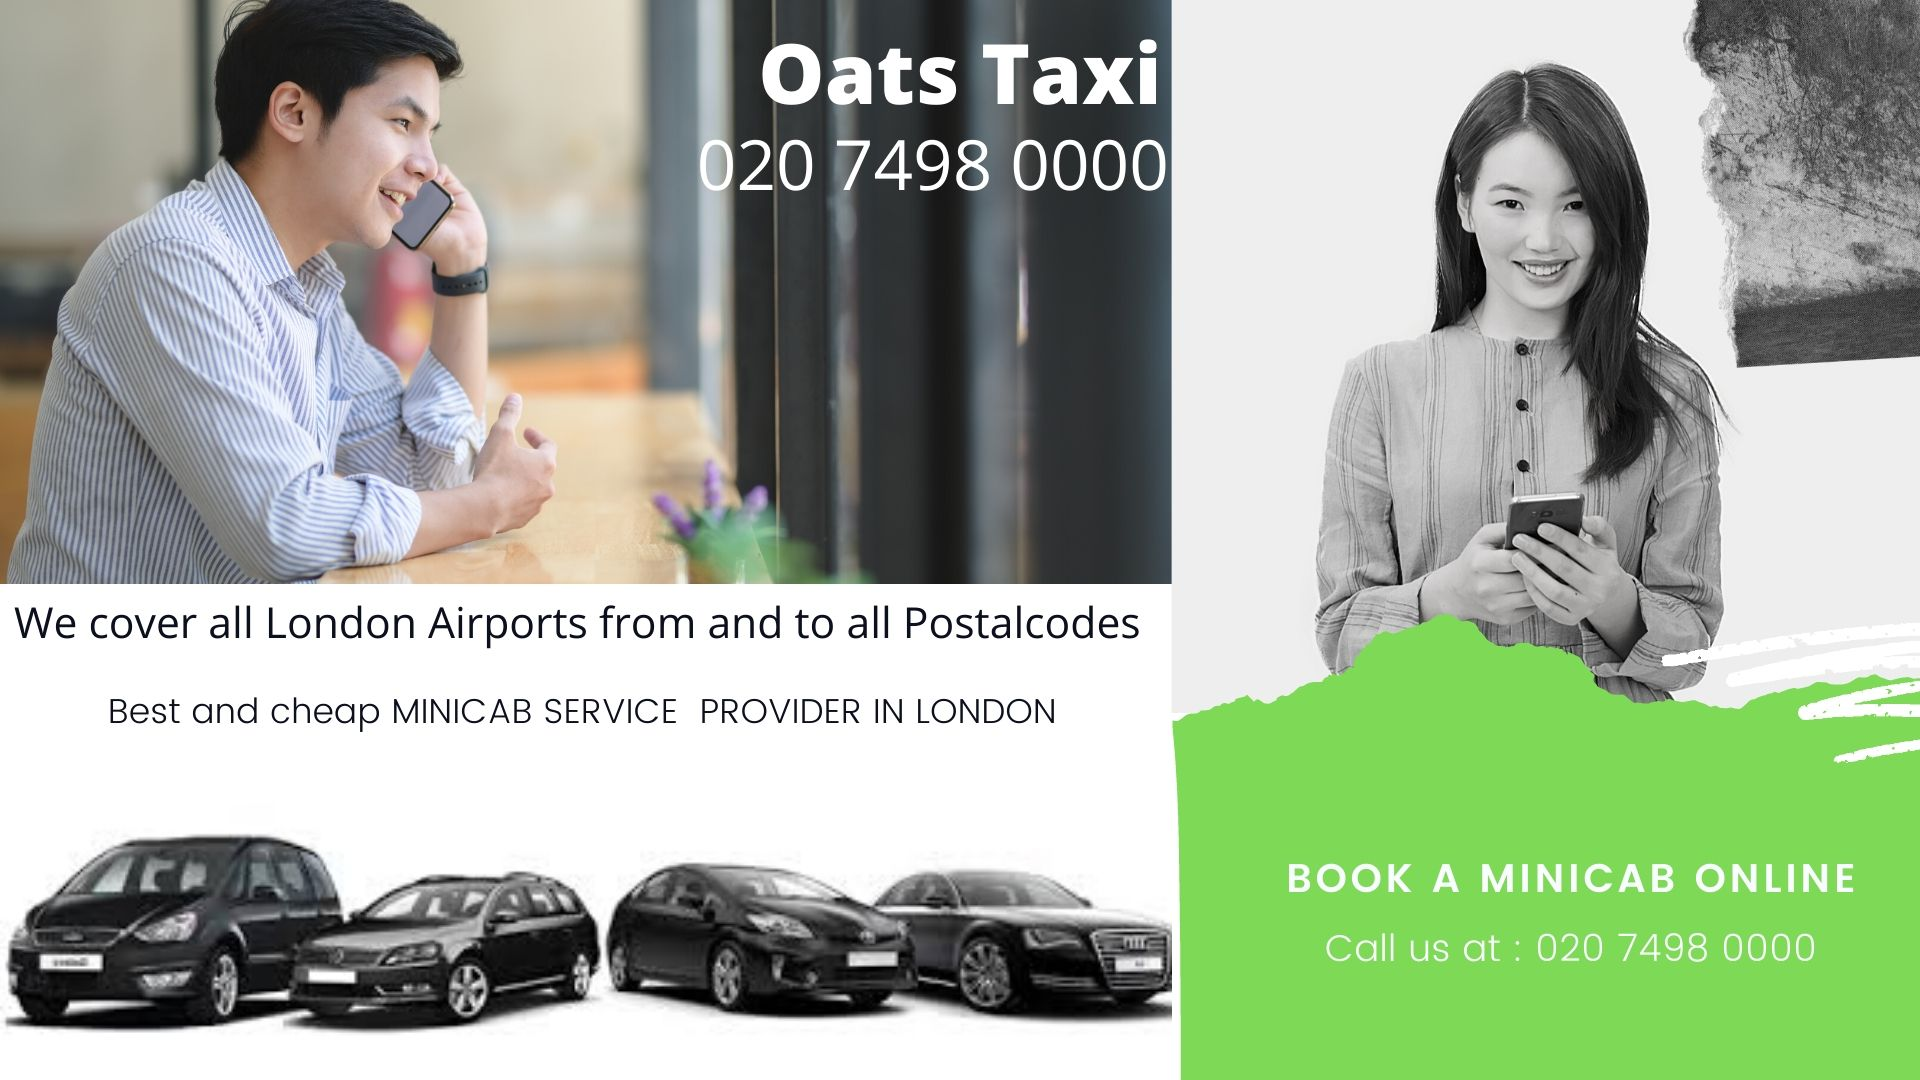 Minicab Near MYSORE ROAD, Battersea SW11, Minicab From Battersea SW11 To Gatwick Airport